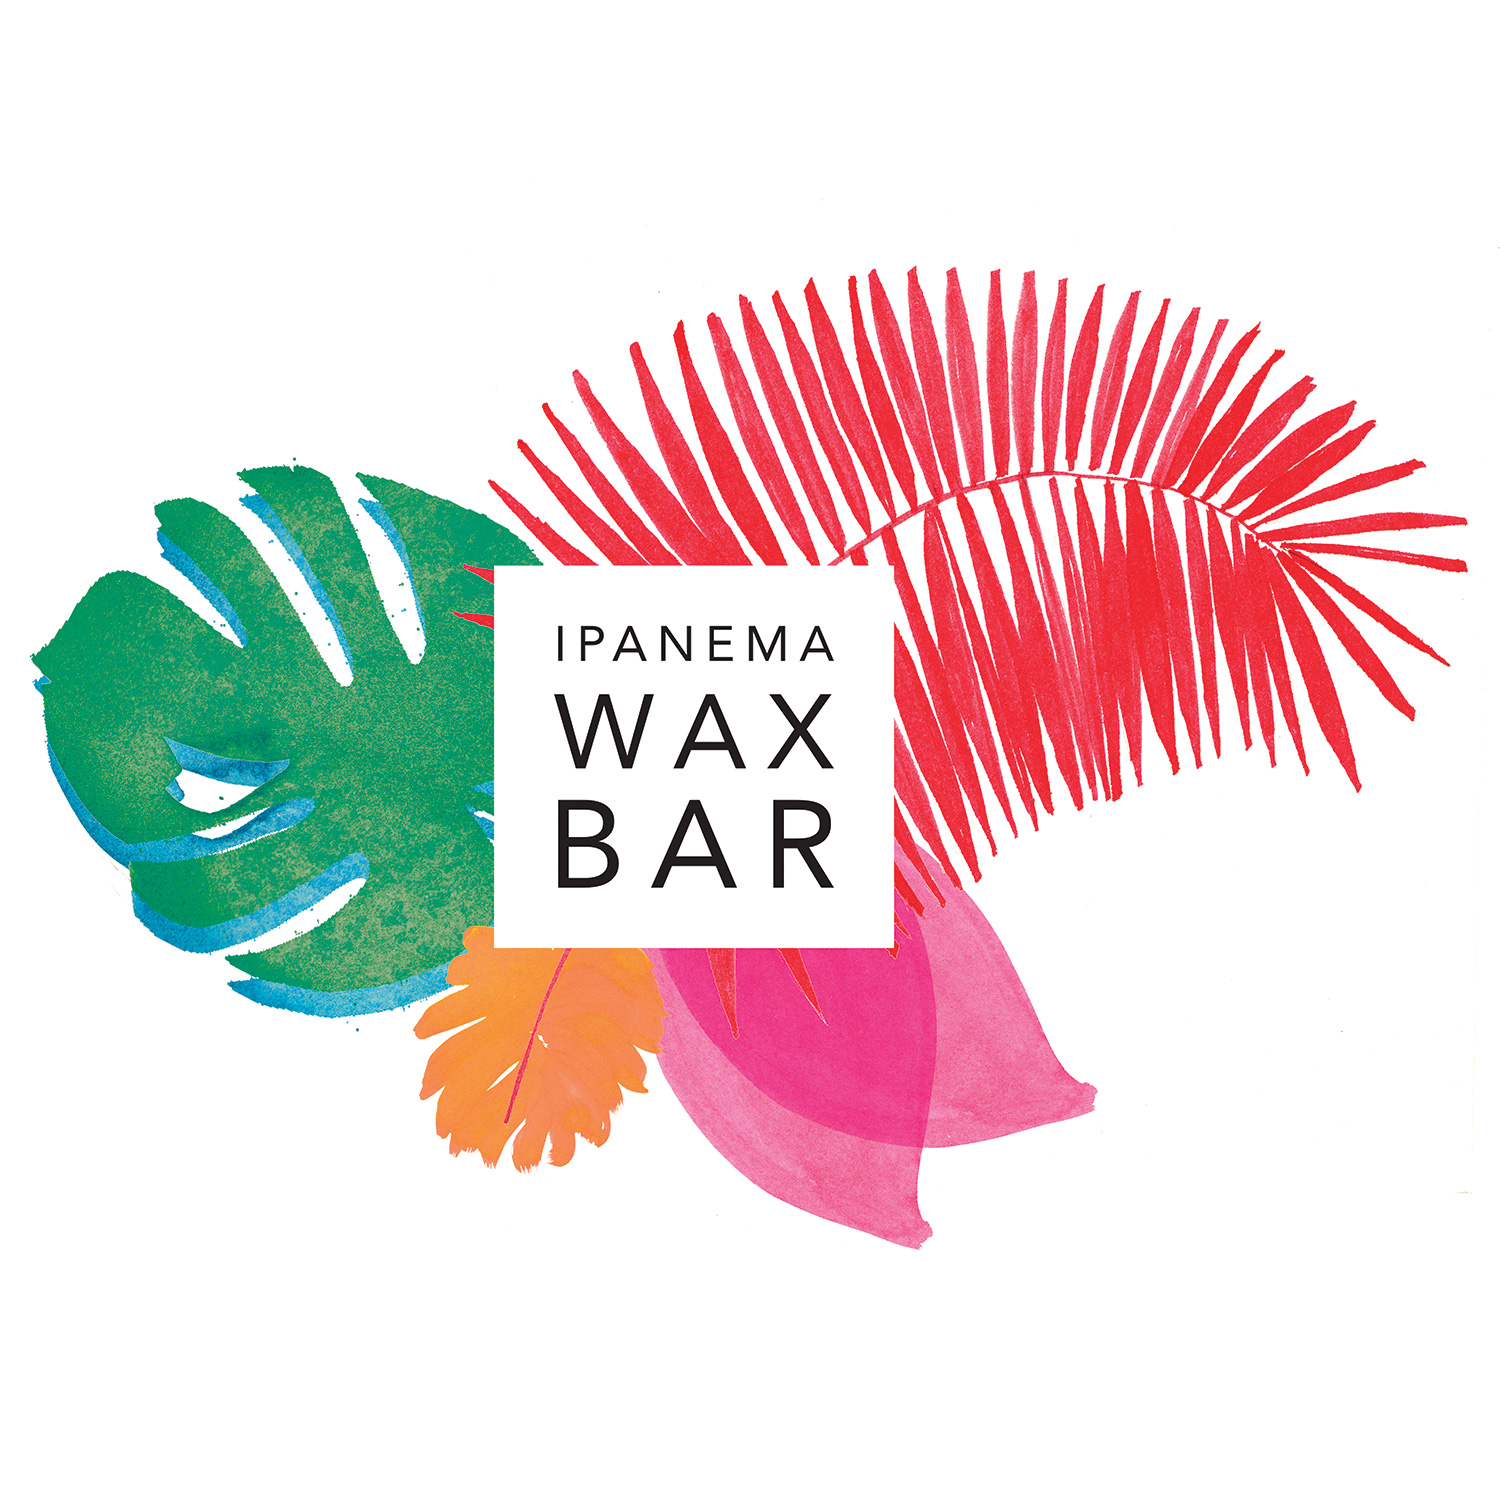 Ipanema Wax Bar